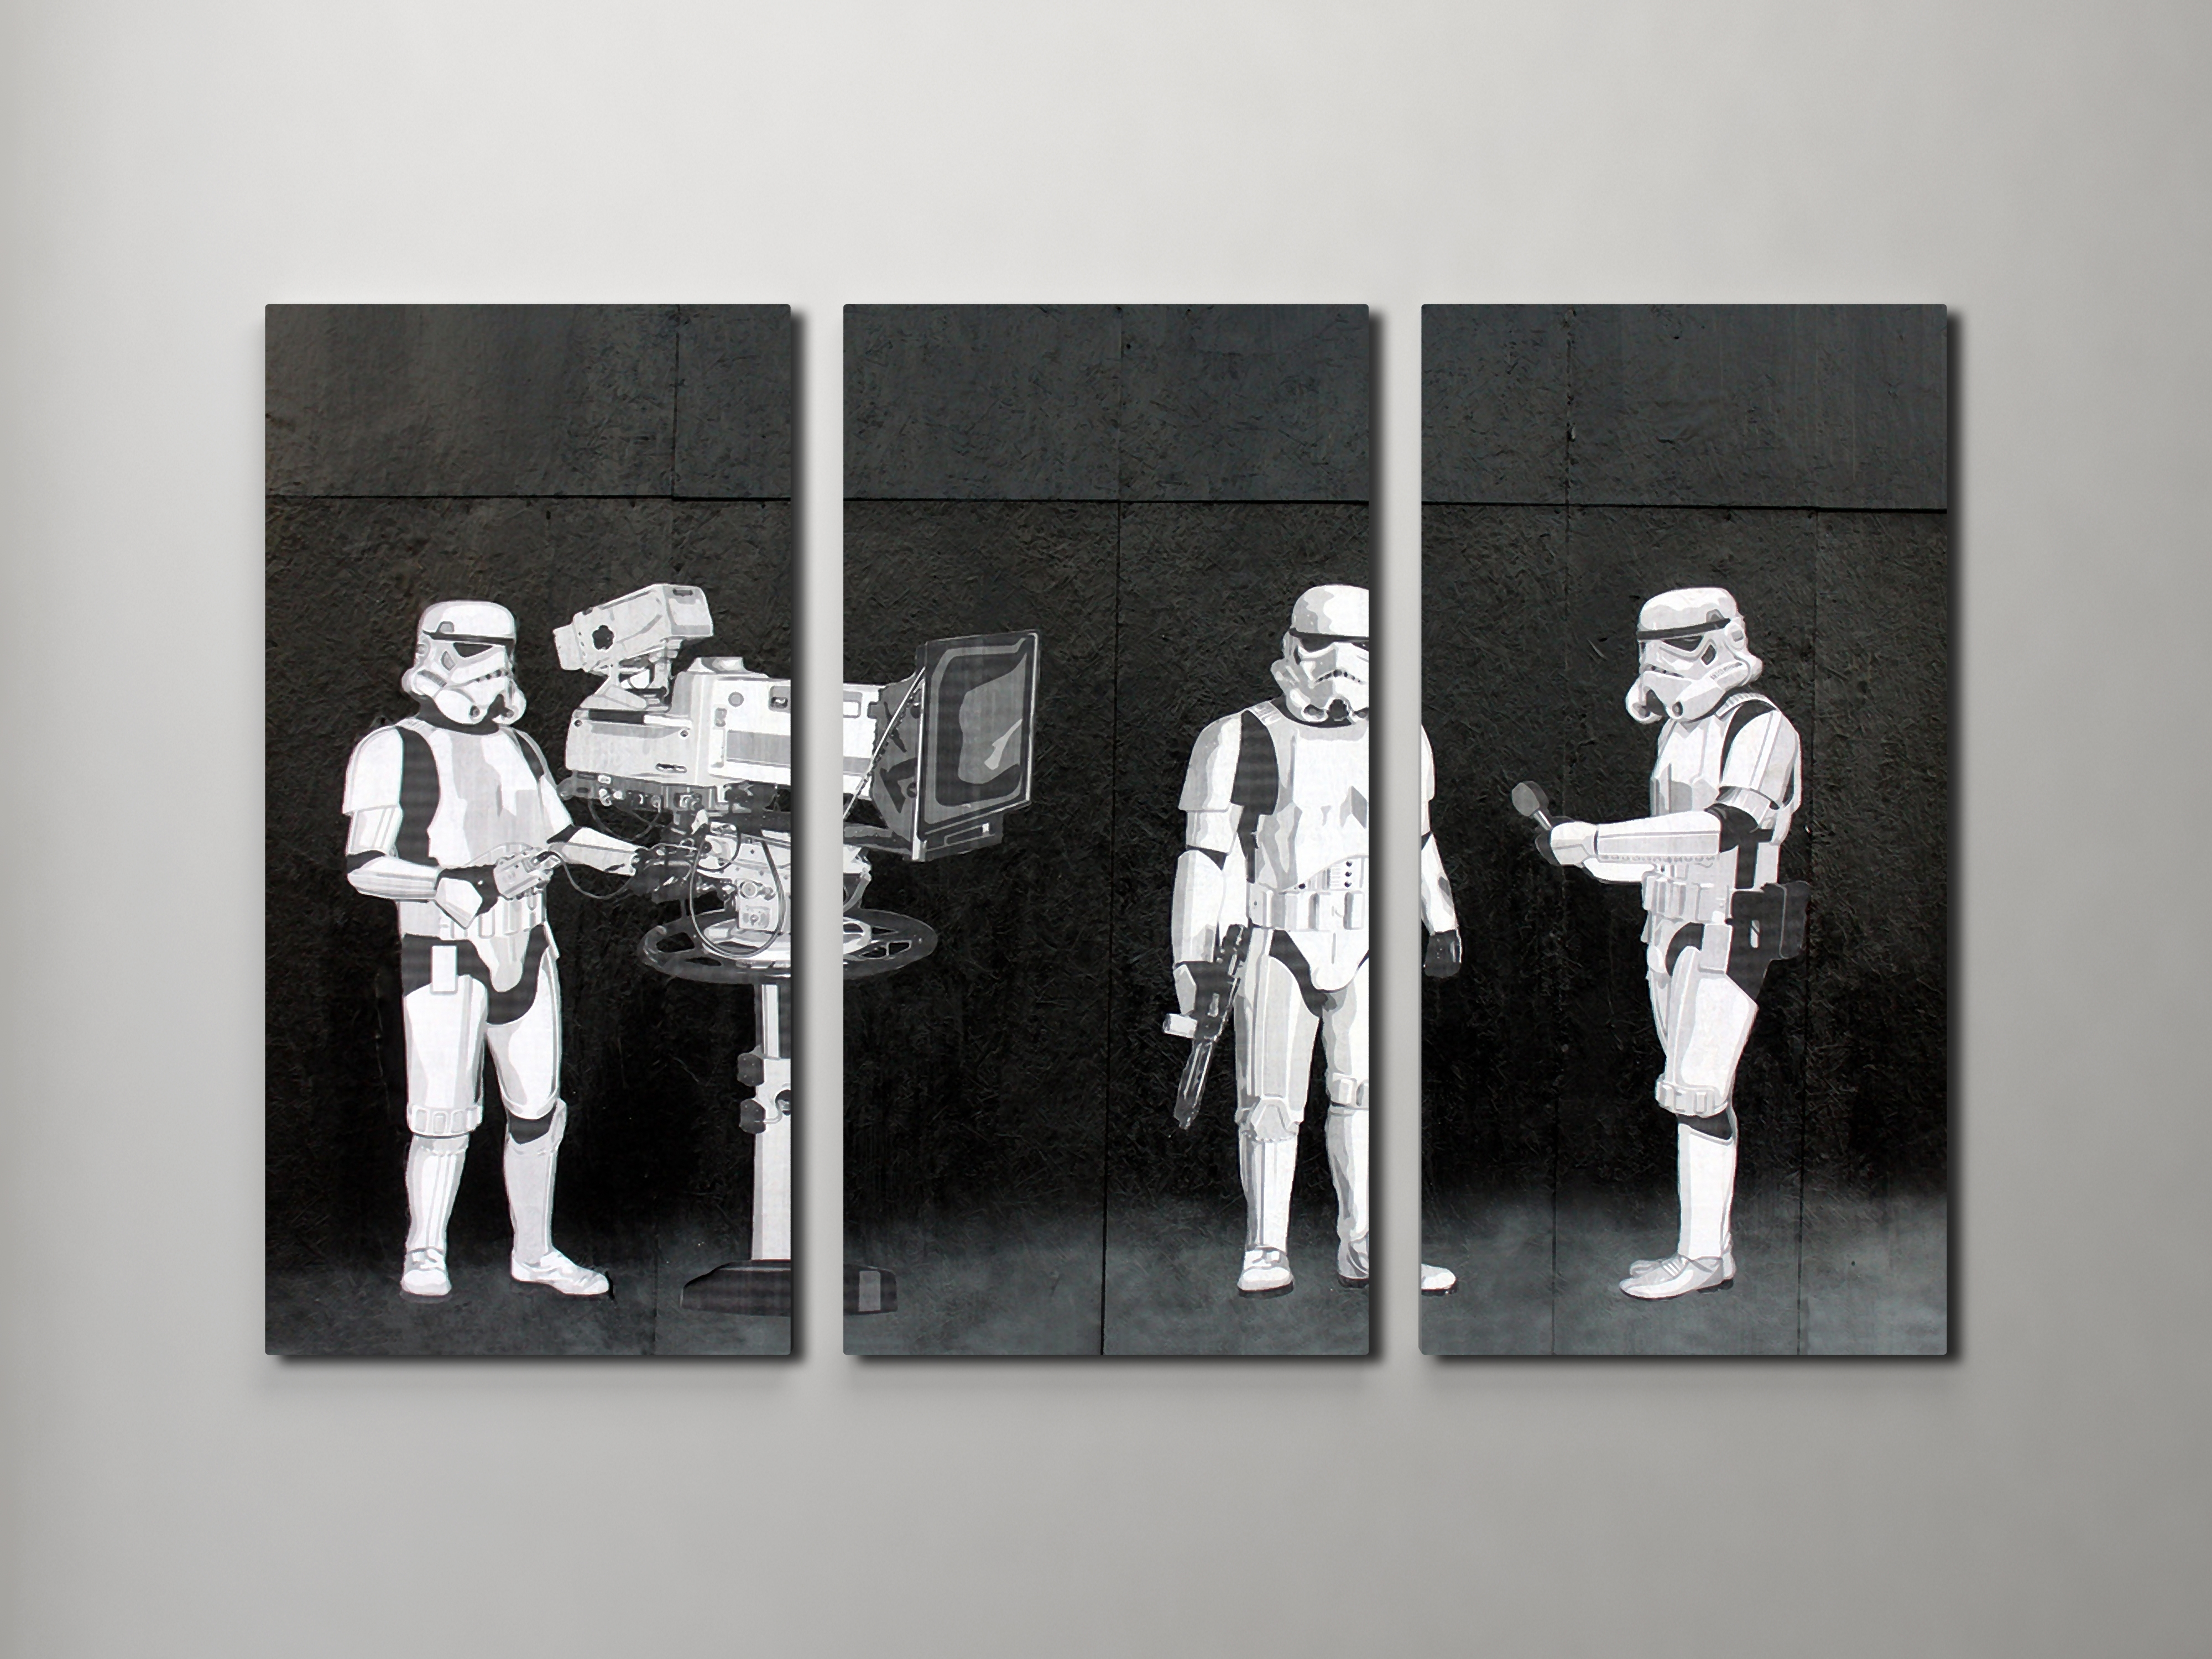 Newest Banksy Stormtroopers Filming Oscars Triptych Canvas Wall Art with Triptych Wall Art